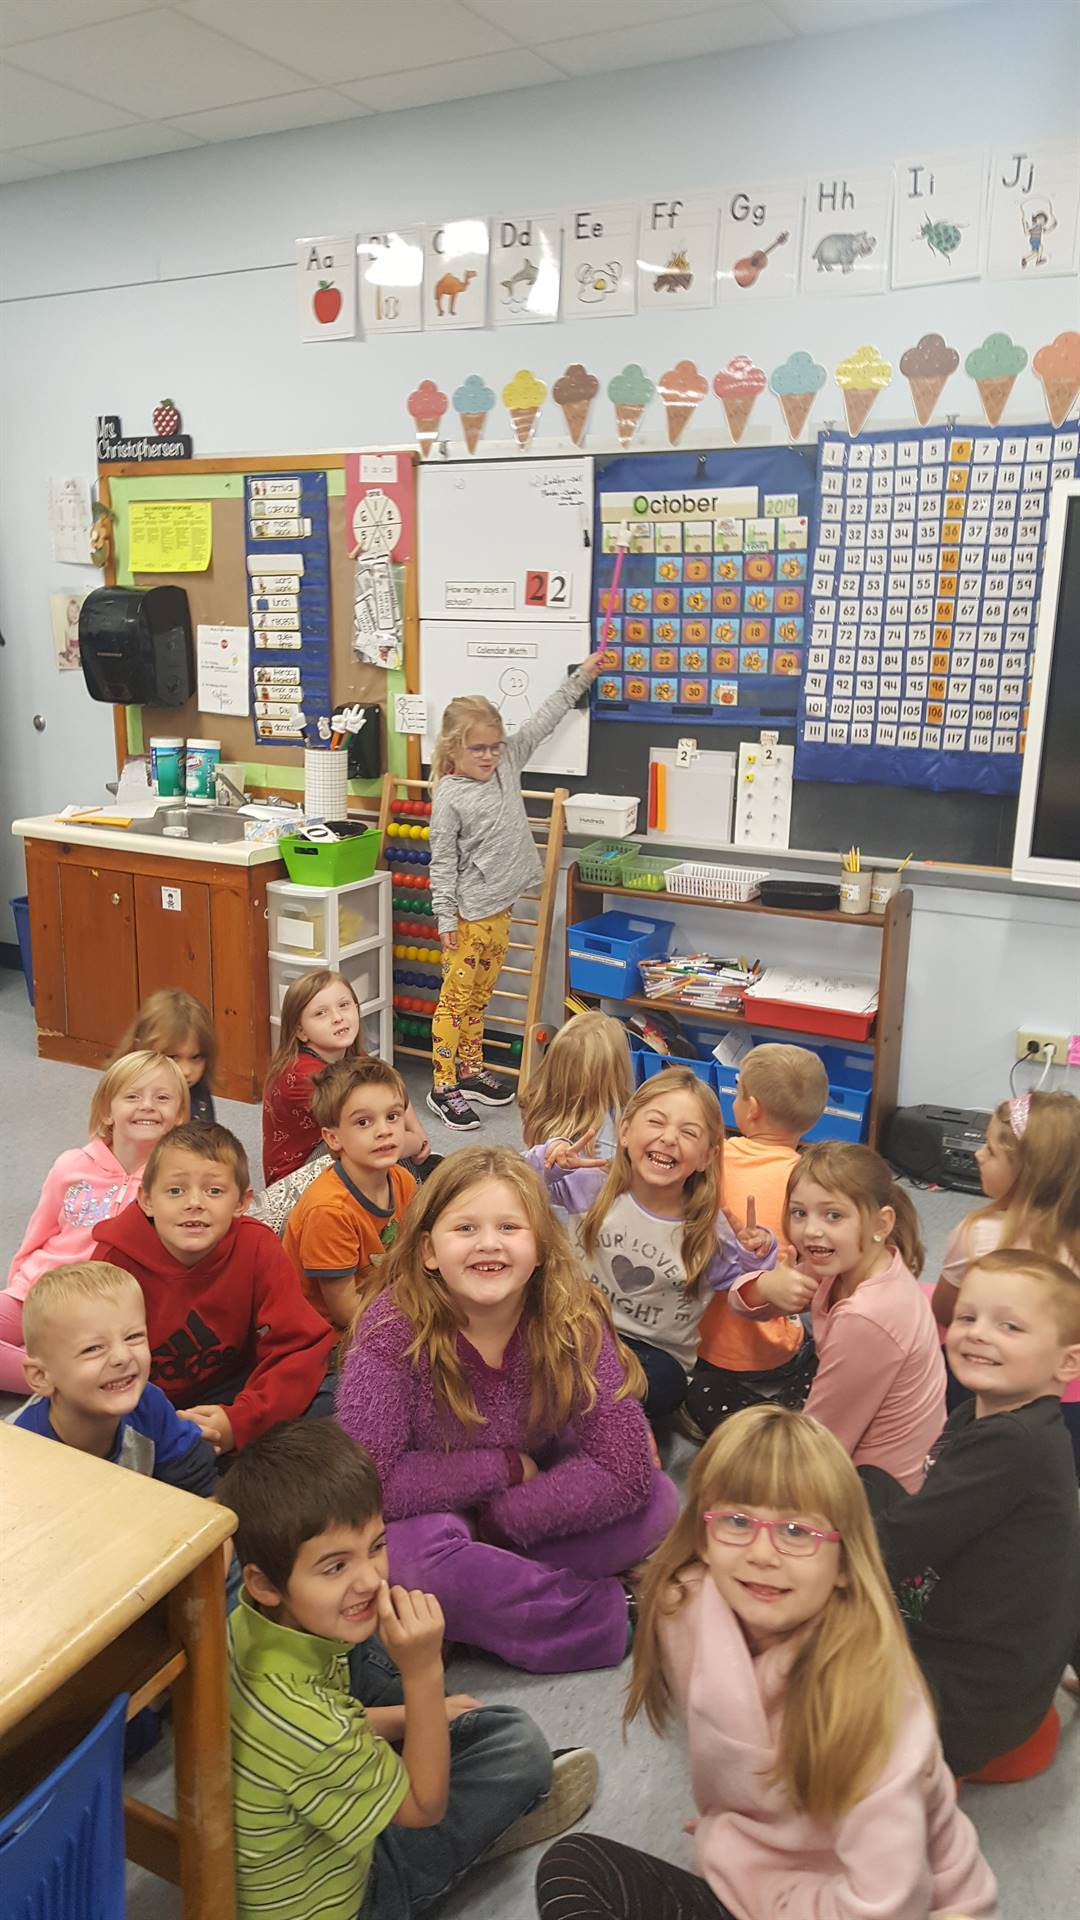 A class of first graders!